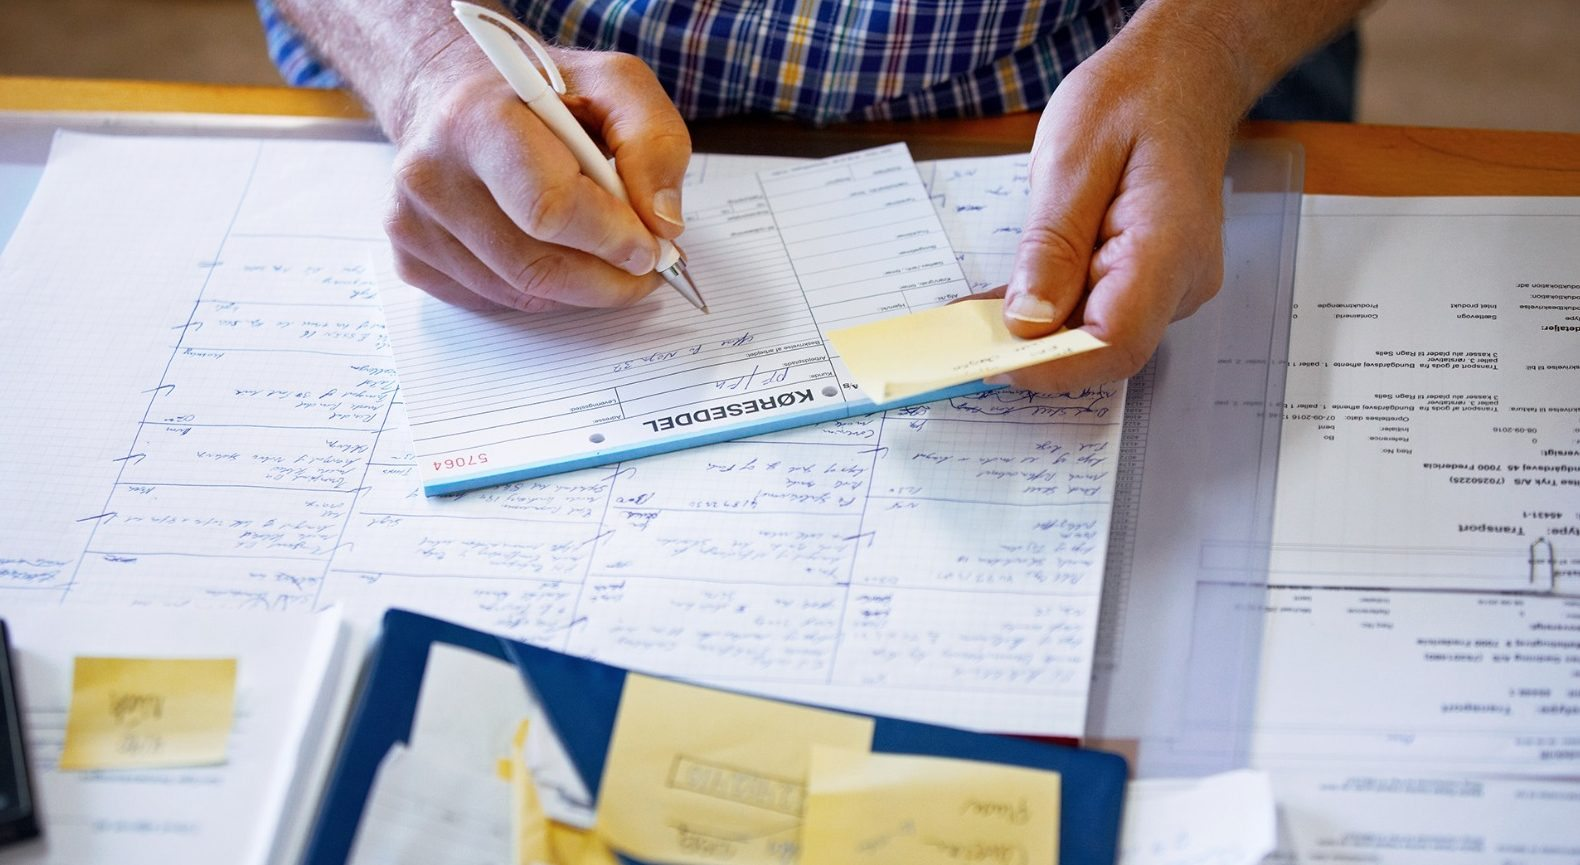 compared to old list making, Emotional Intelligence in Goal-Setting gets you ahead